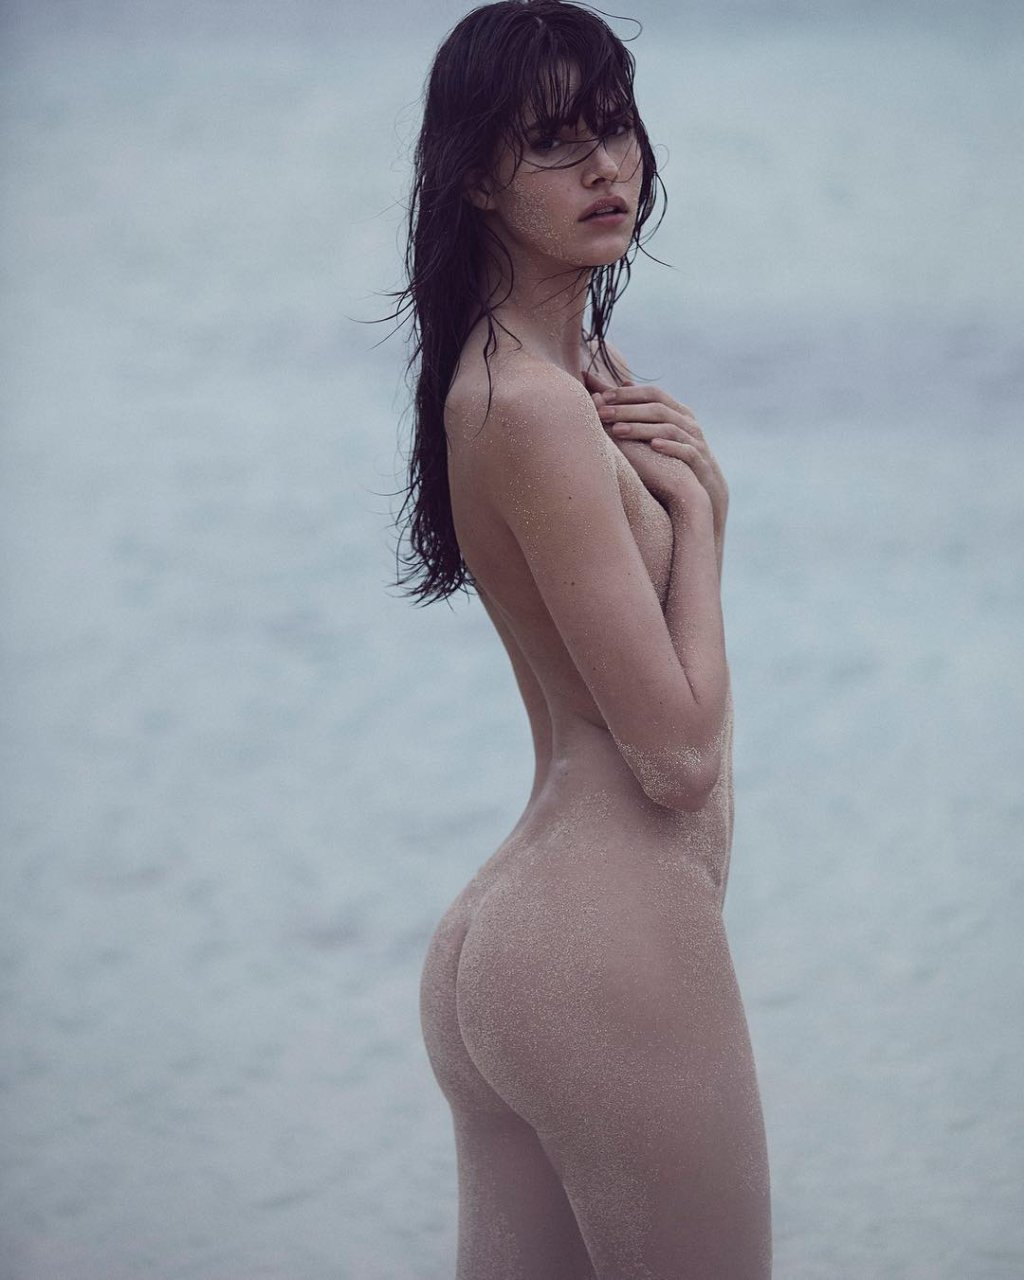 Vanessa Nude picture of